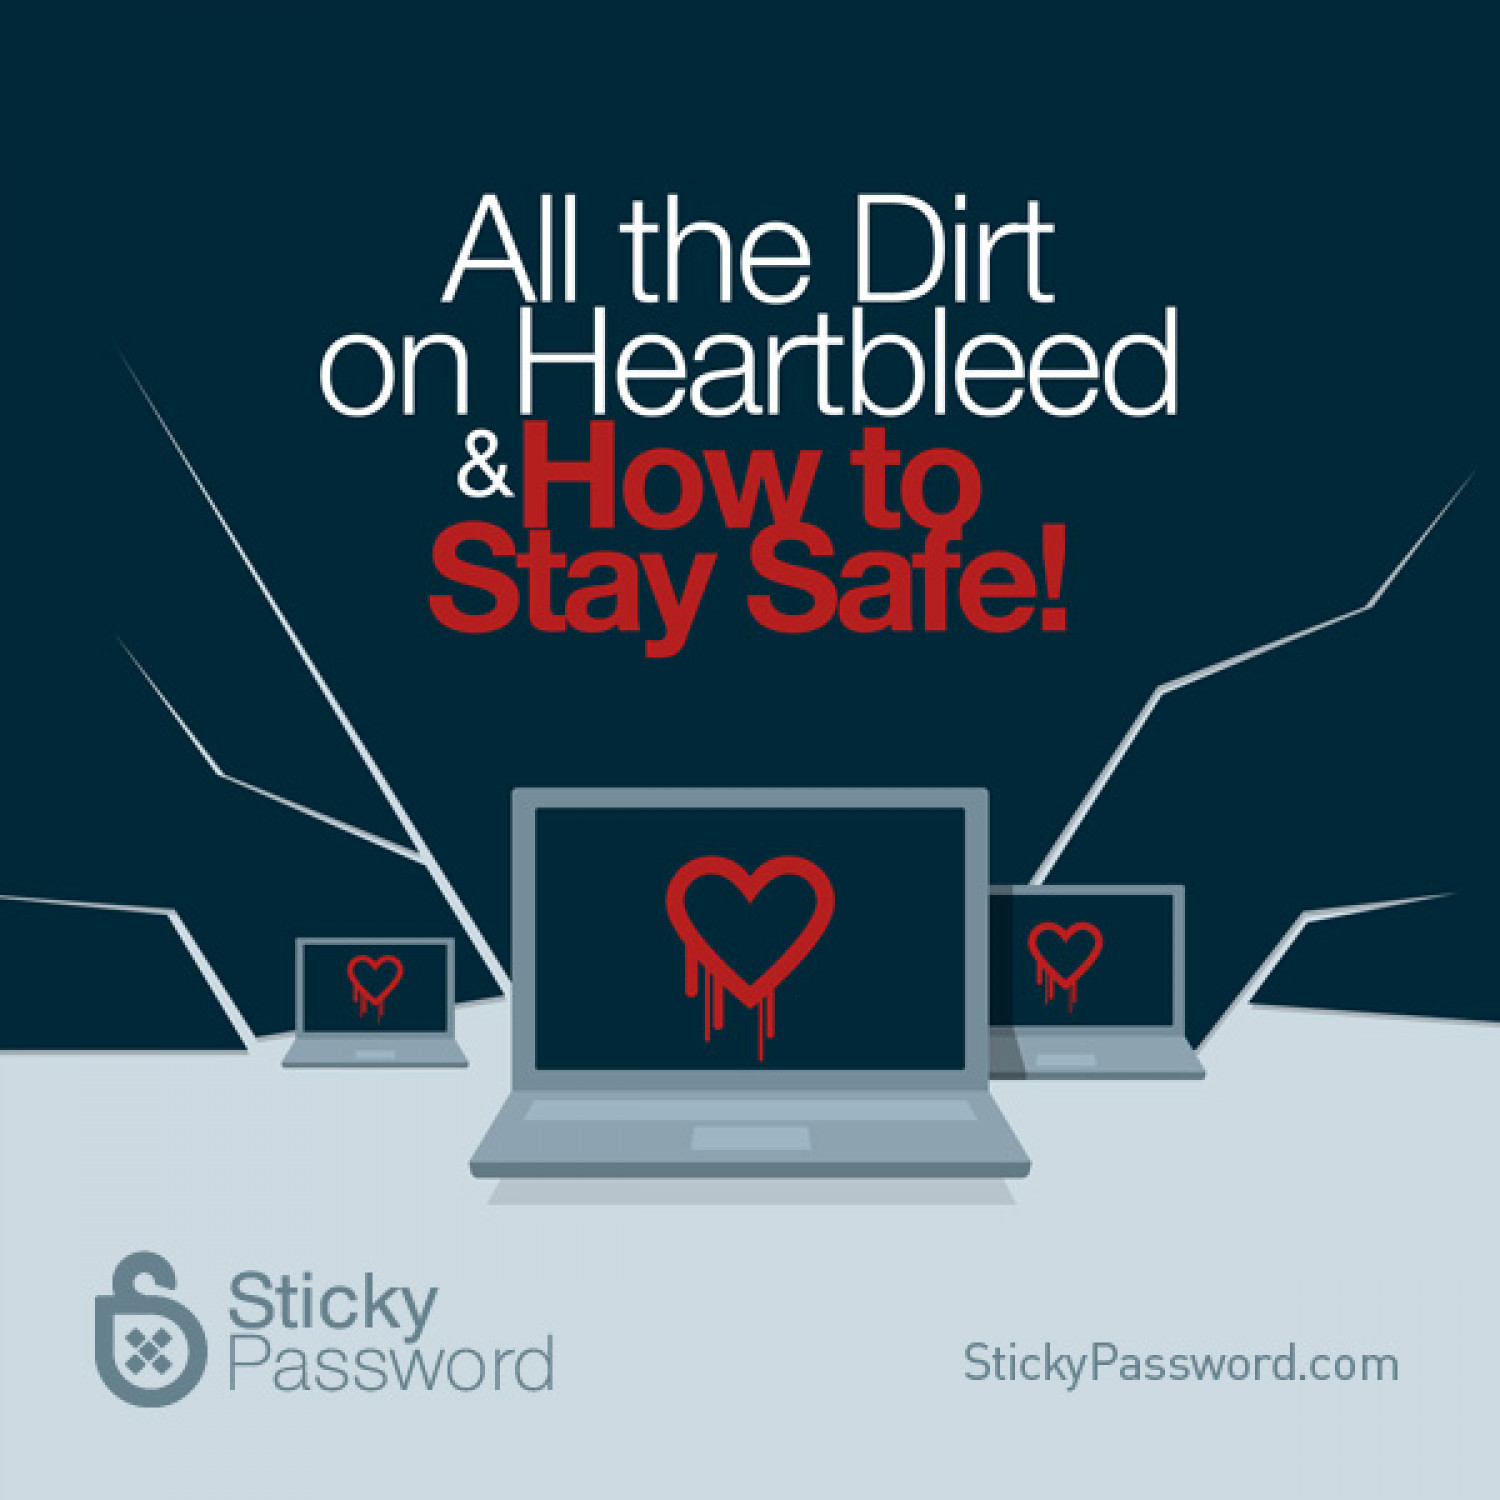 All the Dirt on Heartbleed & How to Stay Safe! Infographic